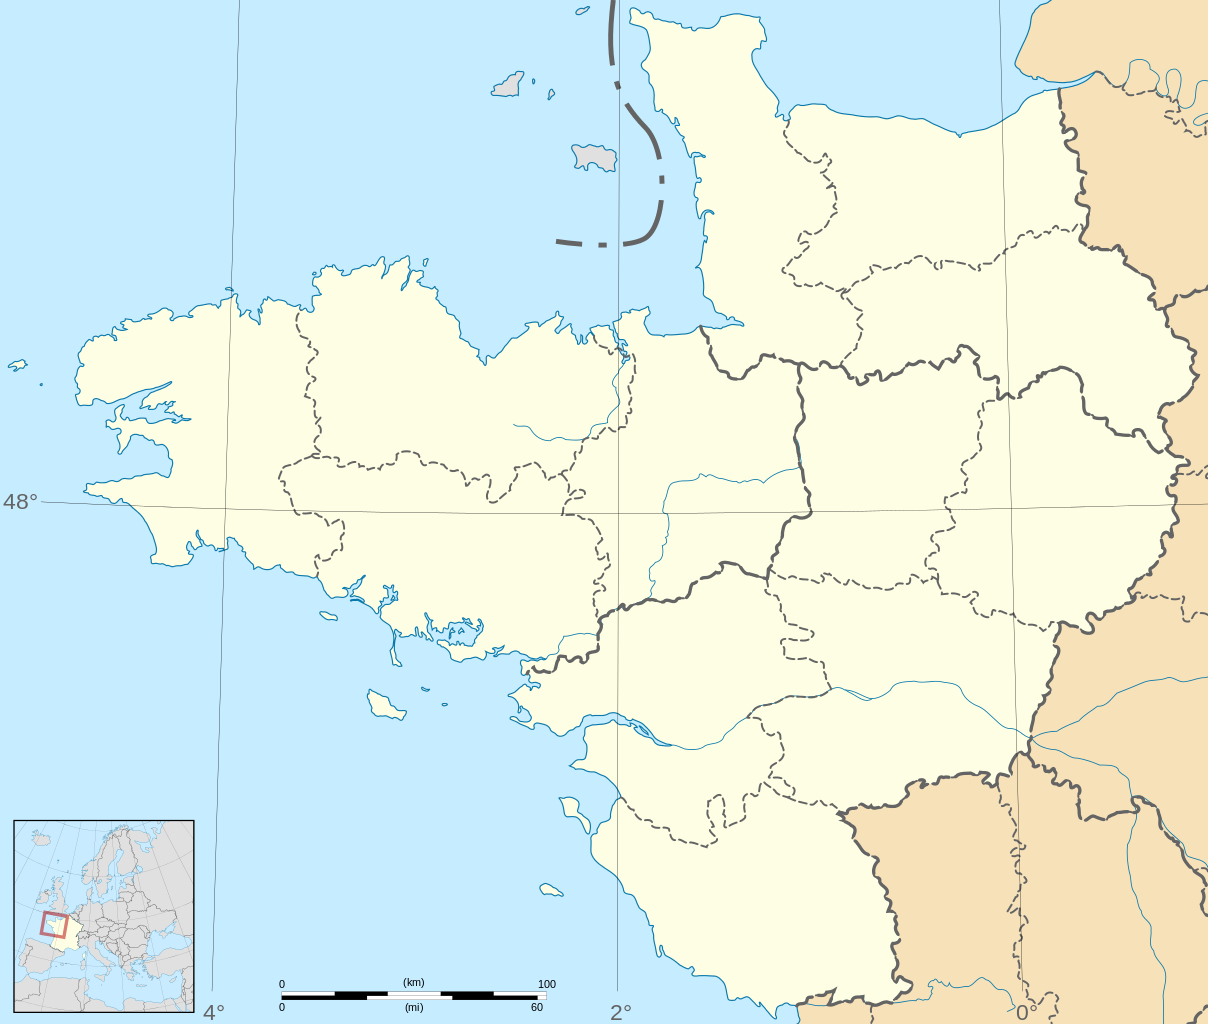 Fichier:france - Grand Ouest - Map-Blank.svg — Wikipédia pour Carte Vierge De La France